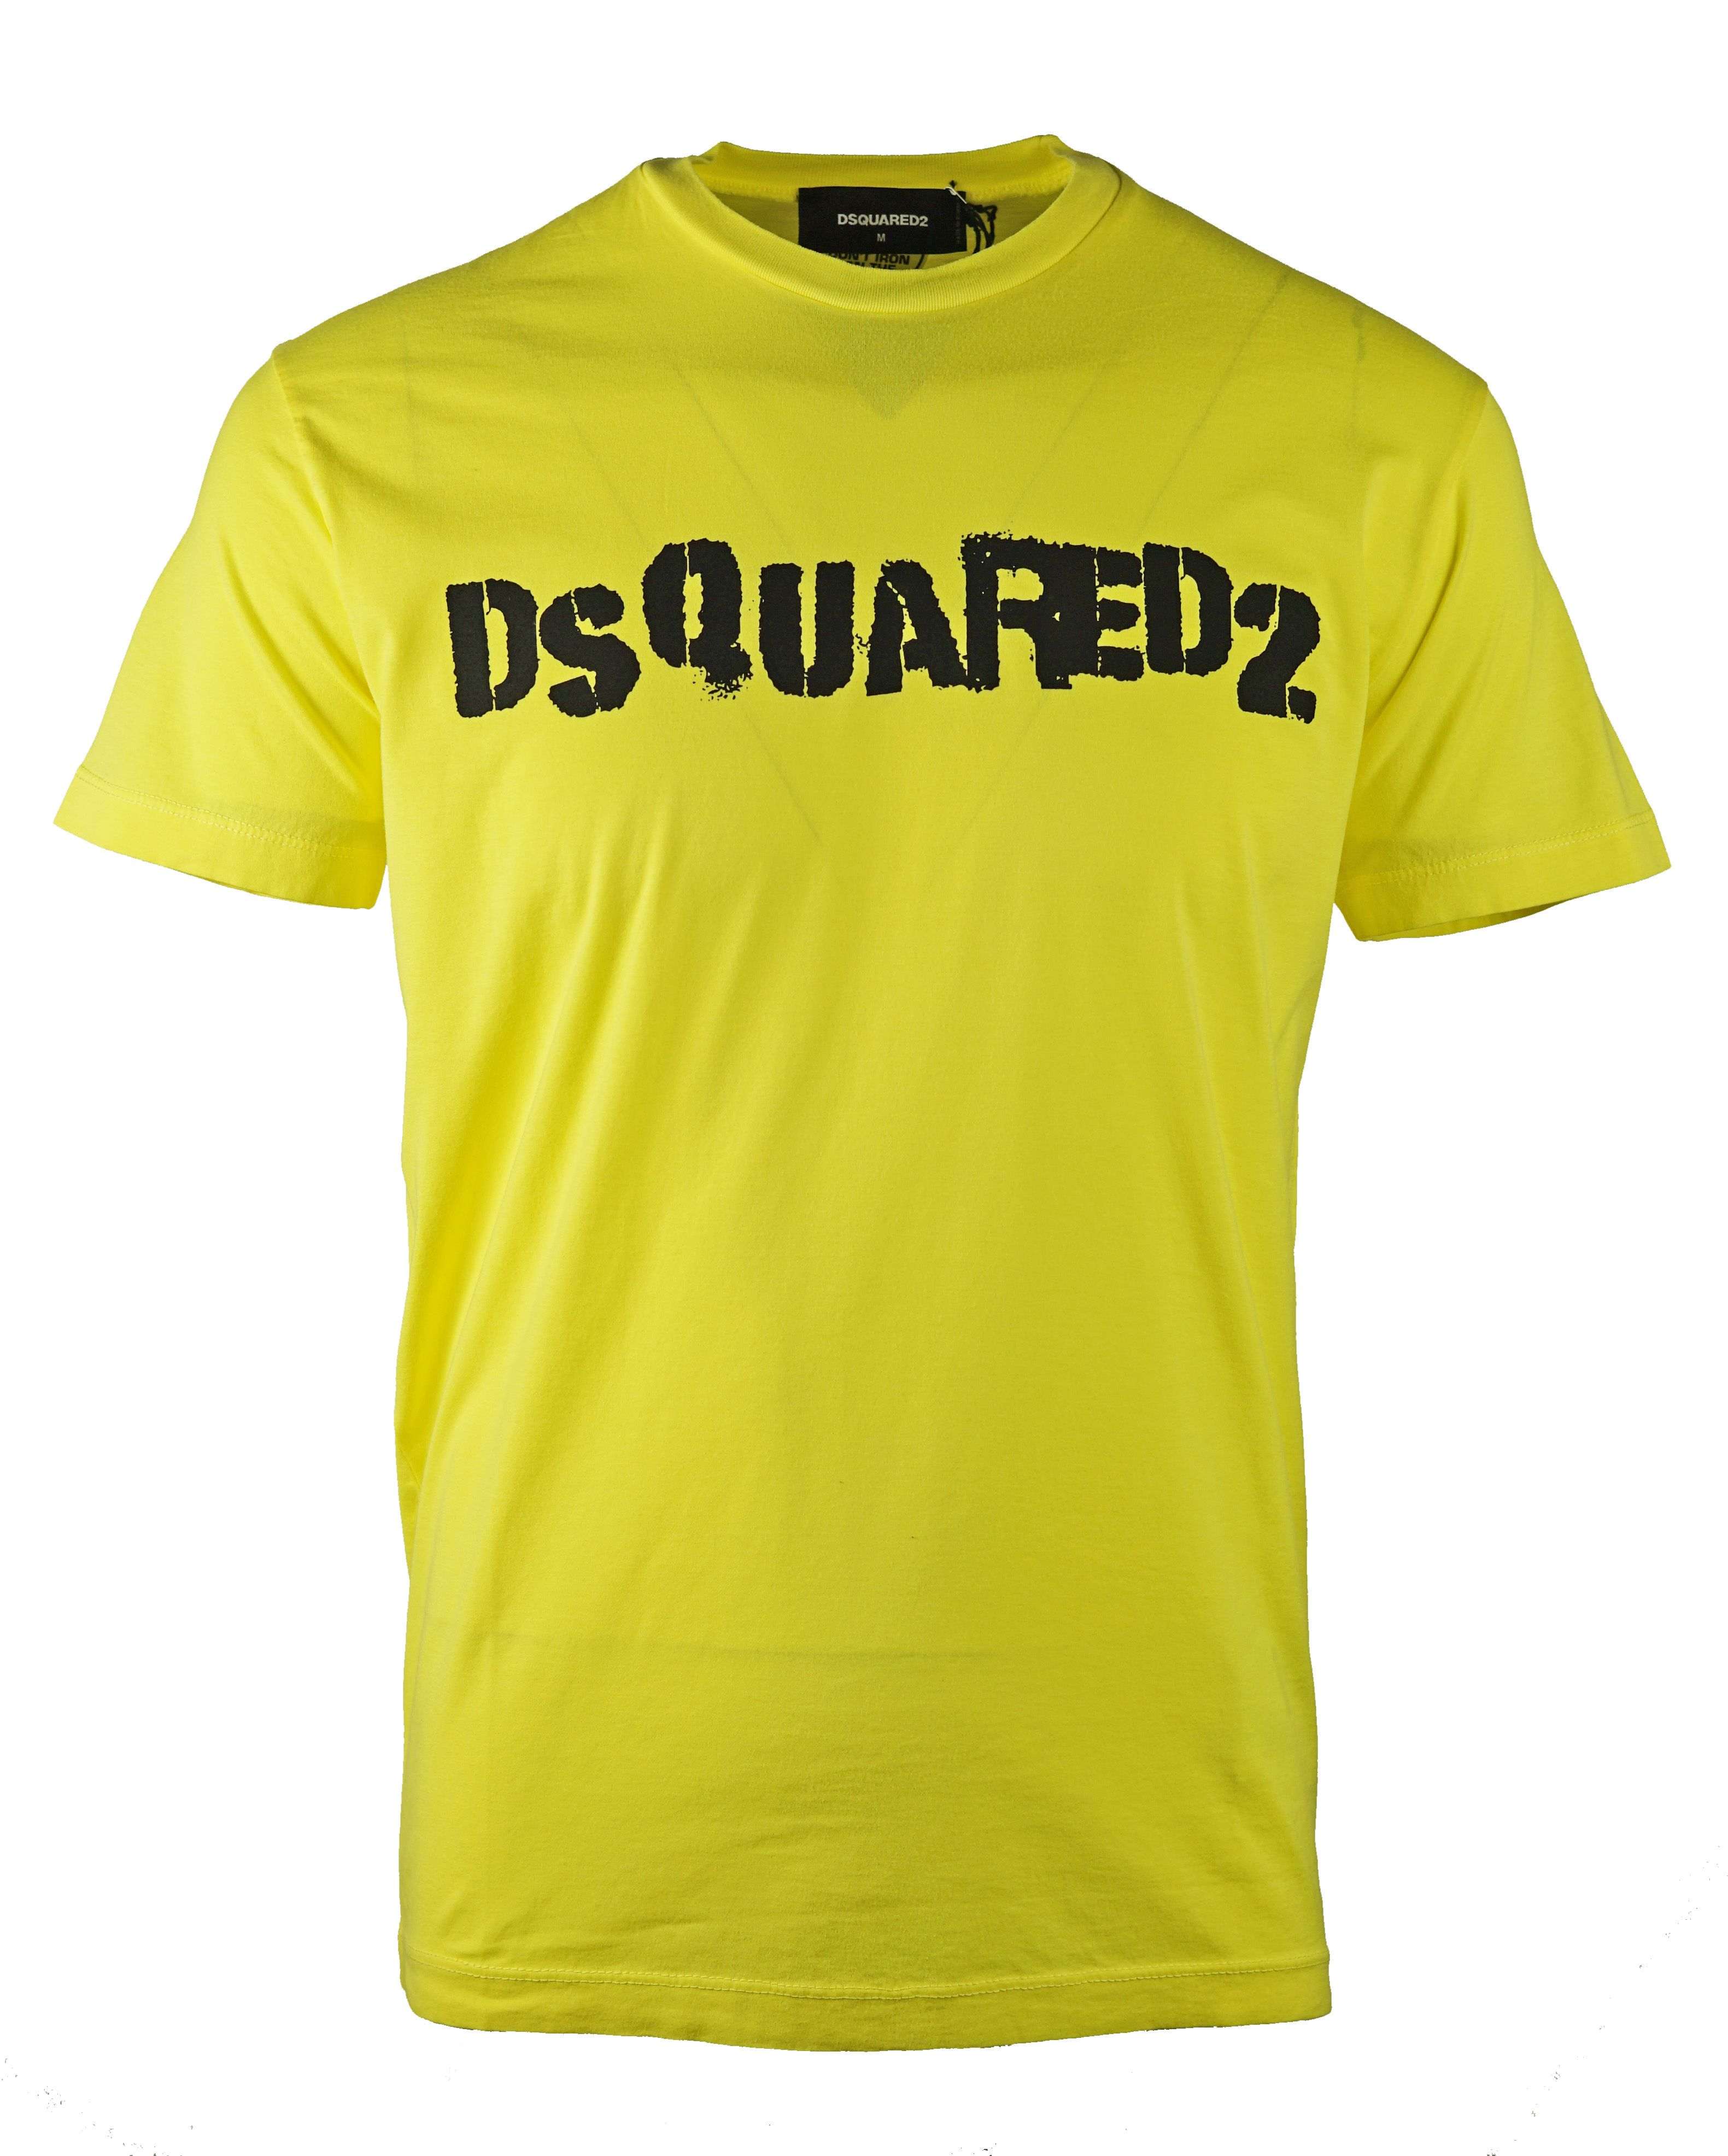 DSquared2 S74GD0494 S22427 172 T-Shirt